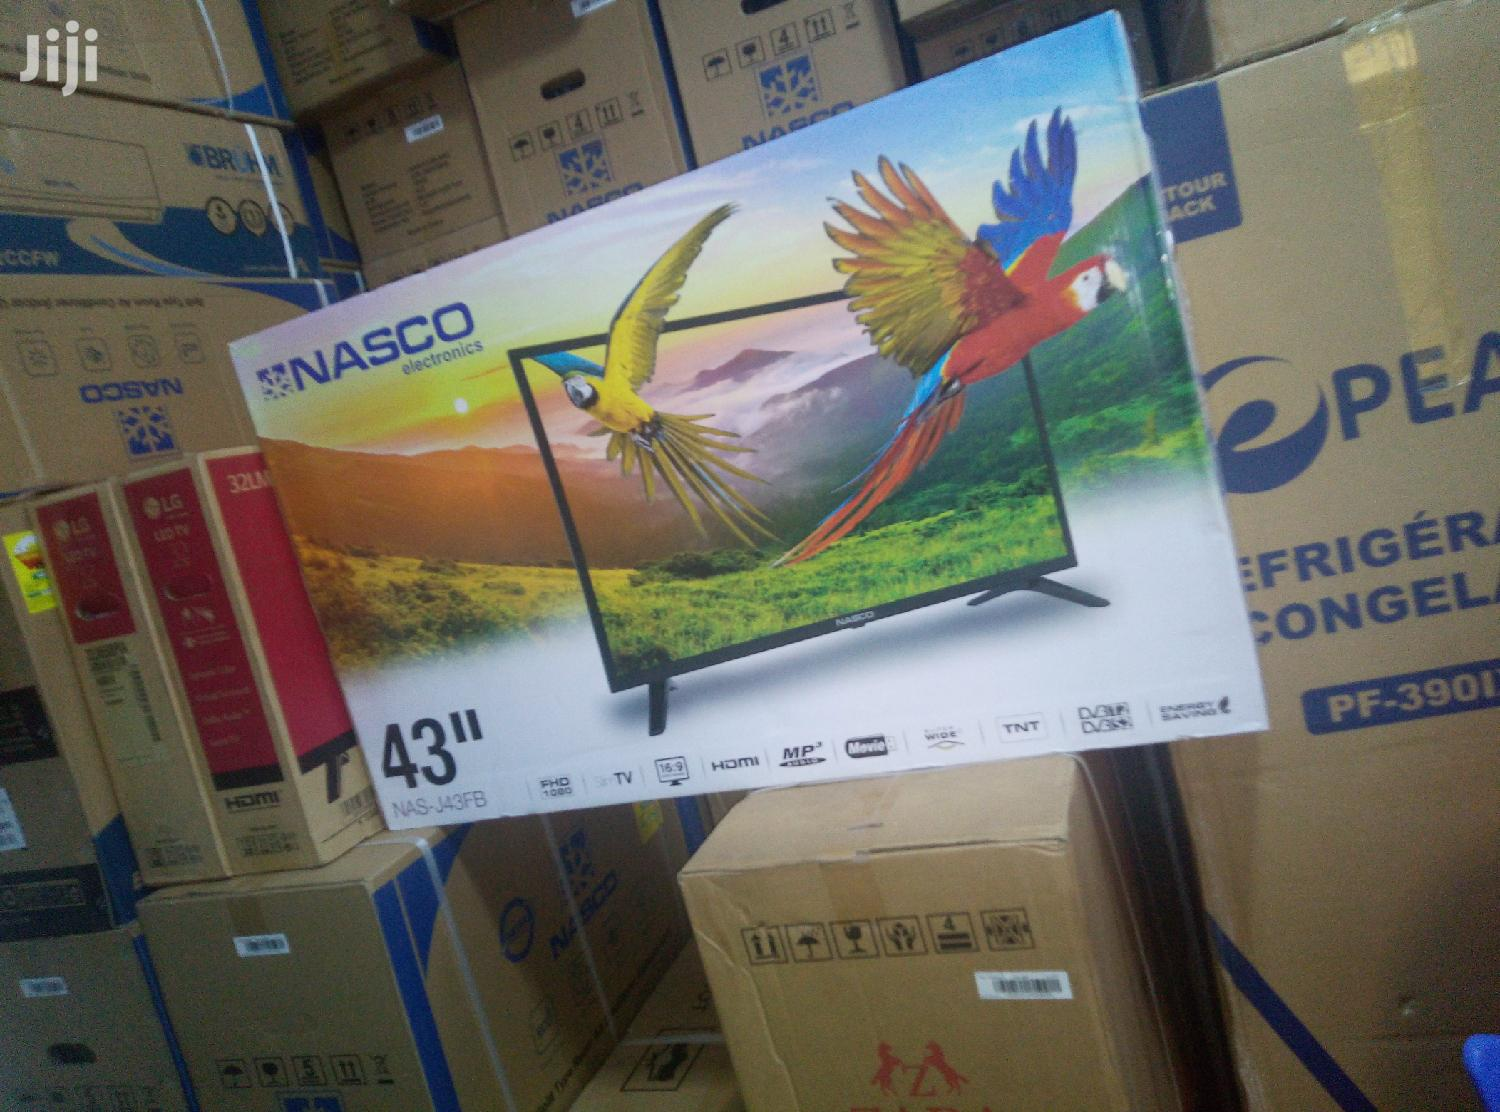 Buy Nasco 43 Digital Satellite TV Full Hd